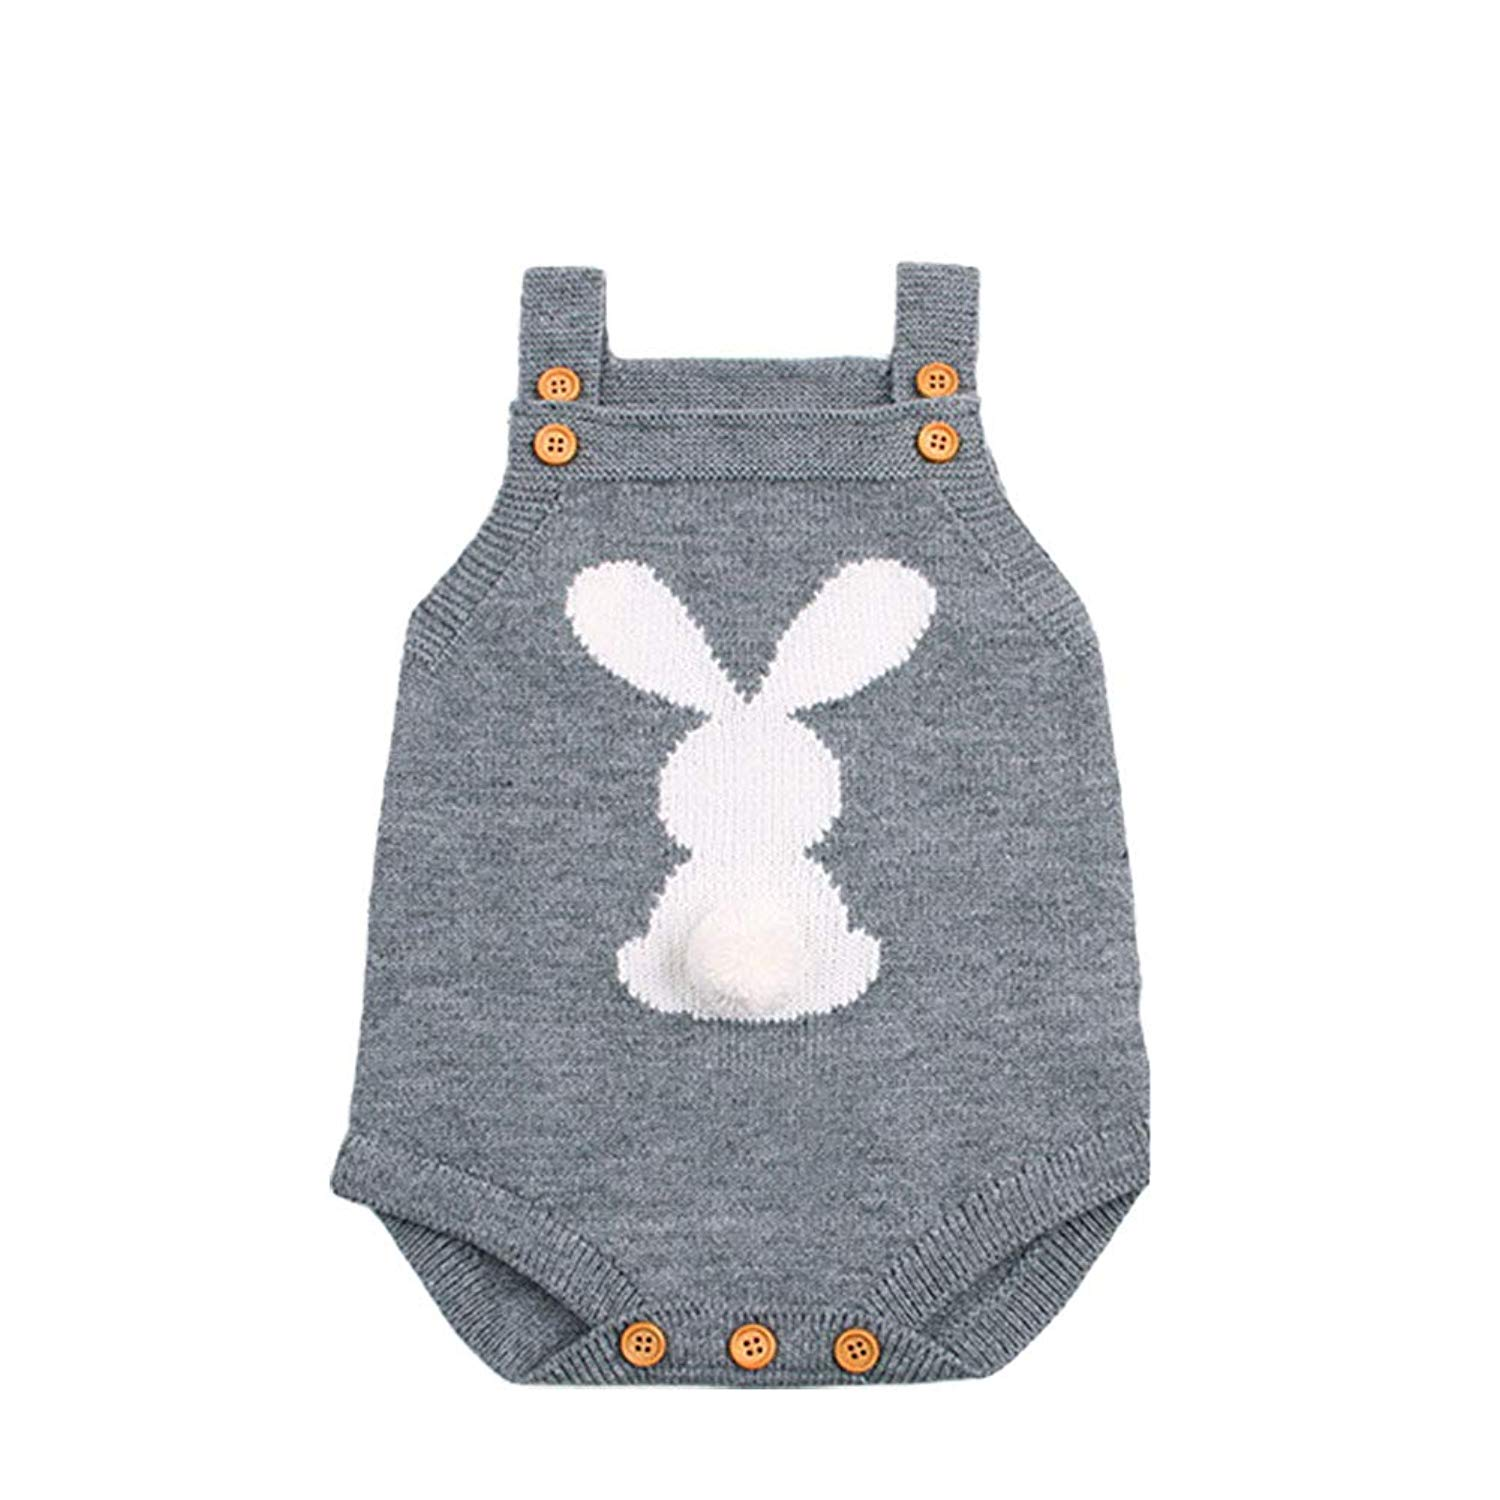 edafdf0a9c54 Get Quotations · Digirlsor Baby Unisex Knit Romper Toddler Boy Girl Jumpsuit  Cute Bunny Sleeveless Outfit Clothes